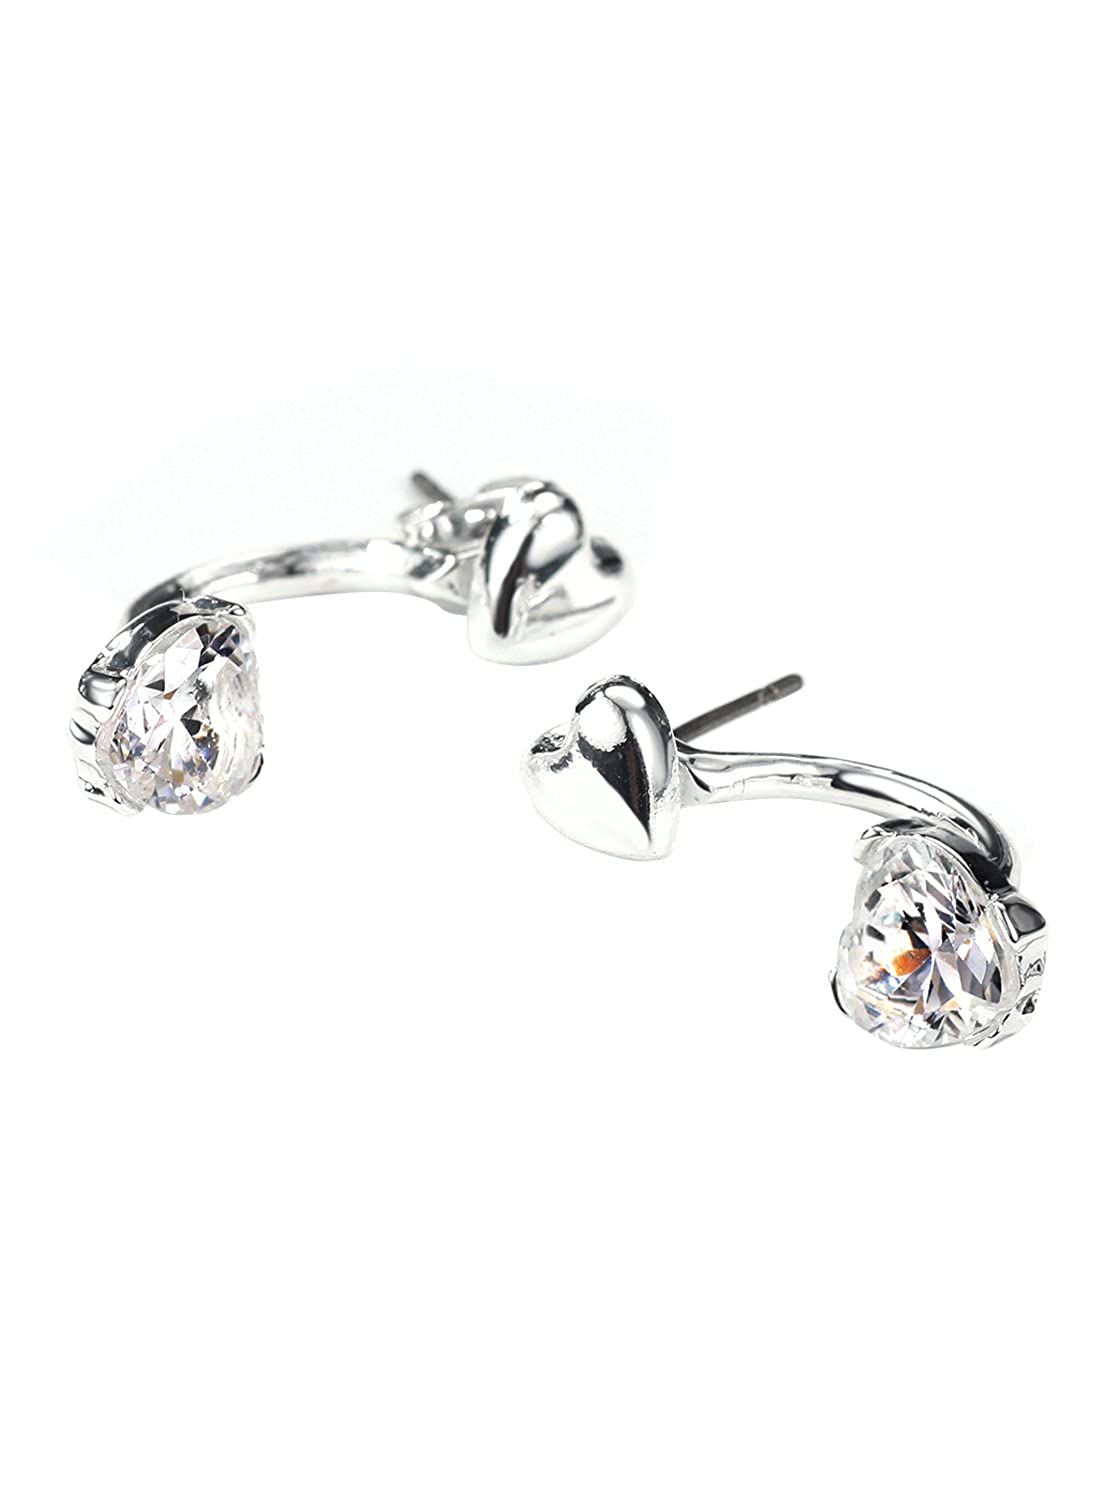 Neoglory Jewelry Silver Color CZ Cubic Zirconia Jacket Earrings for Sensitive Ears AMZ16-5662